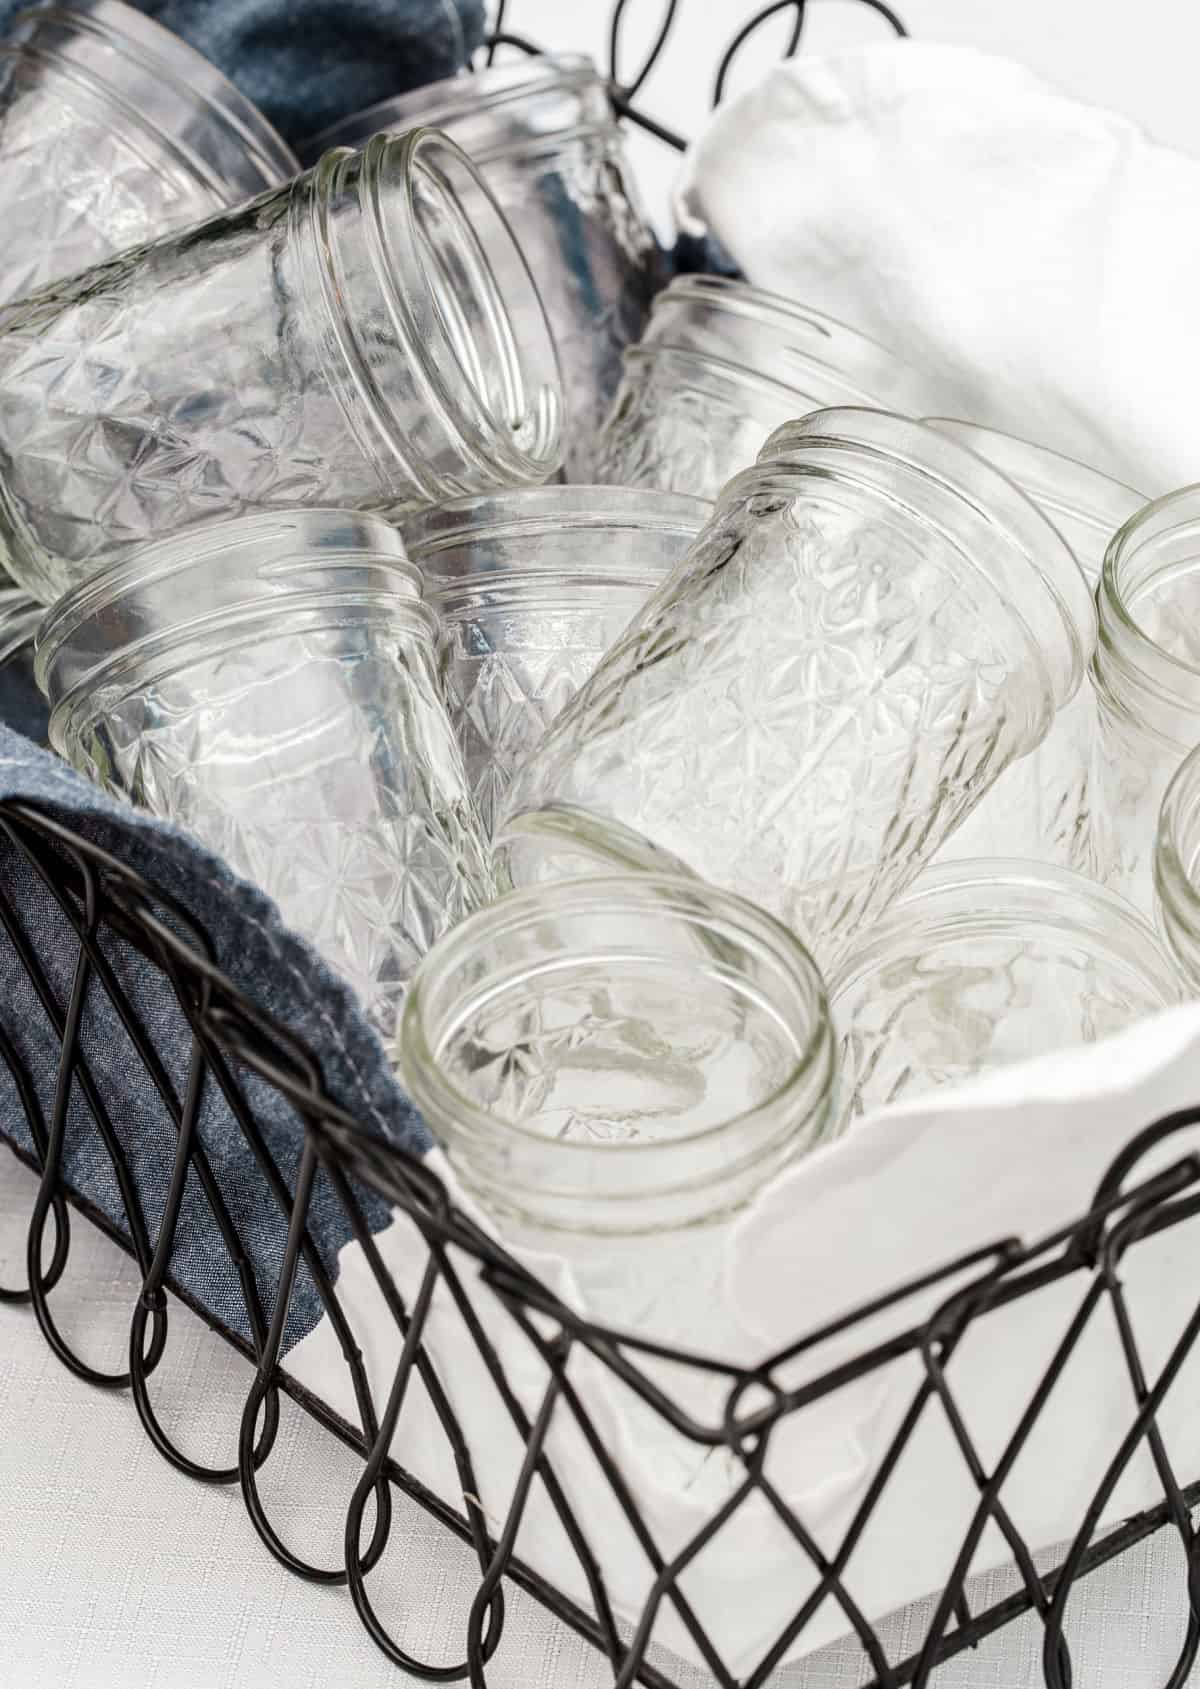 jars stacked in wire basket